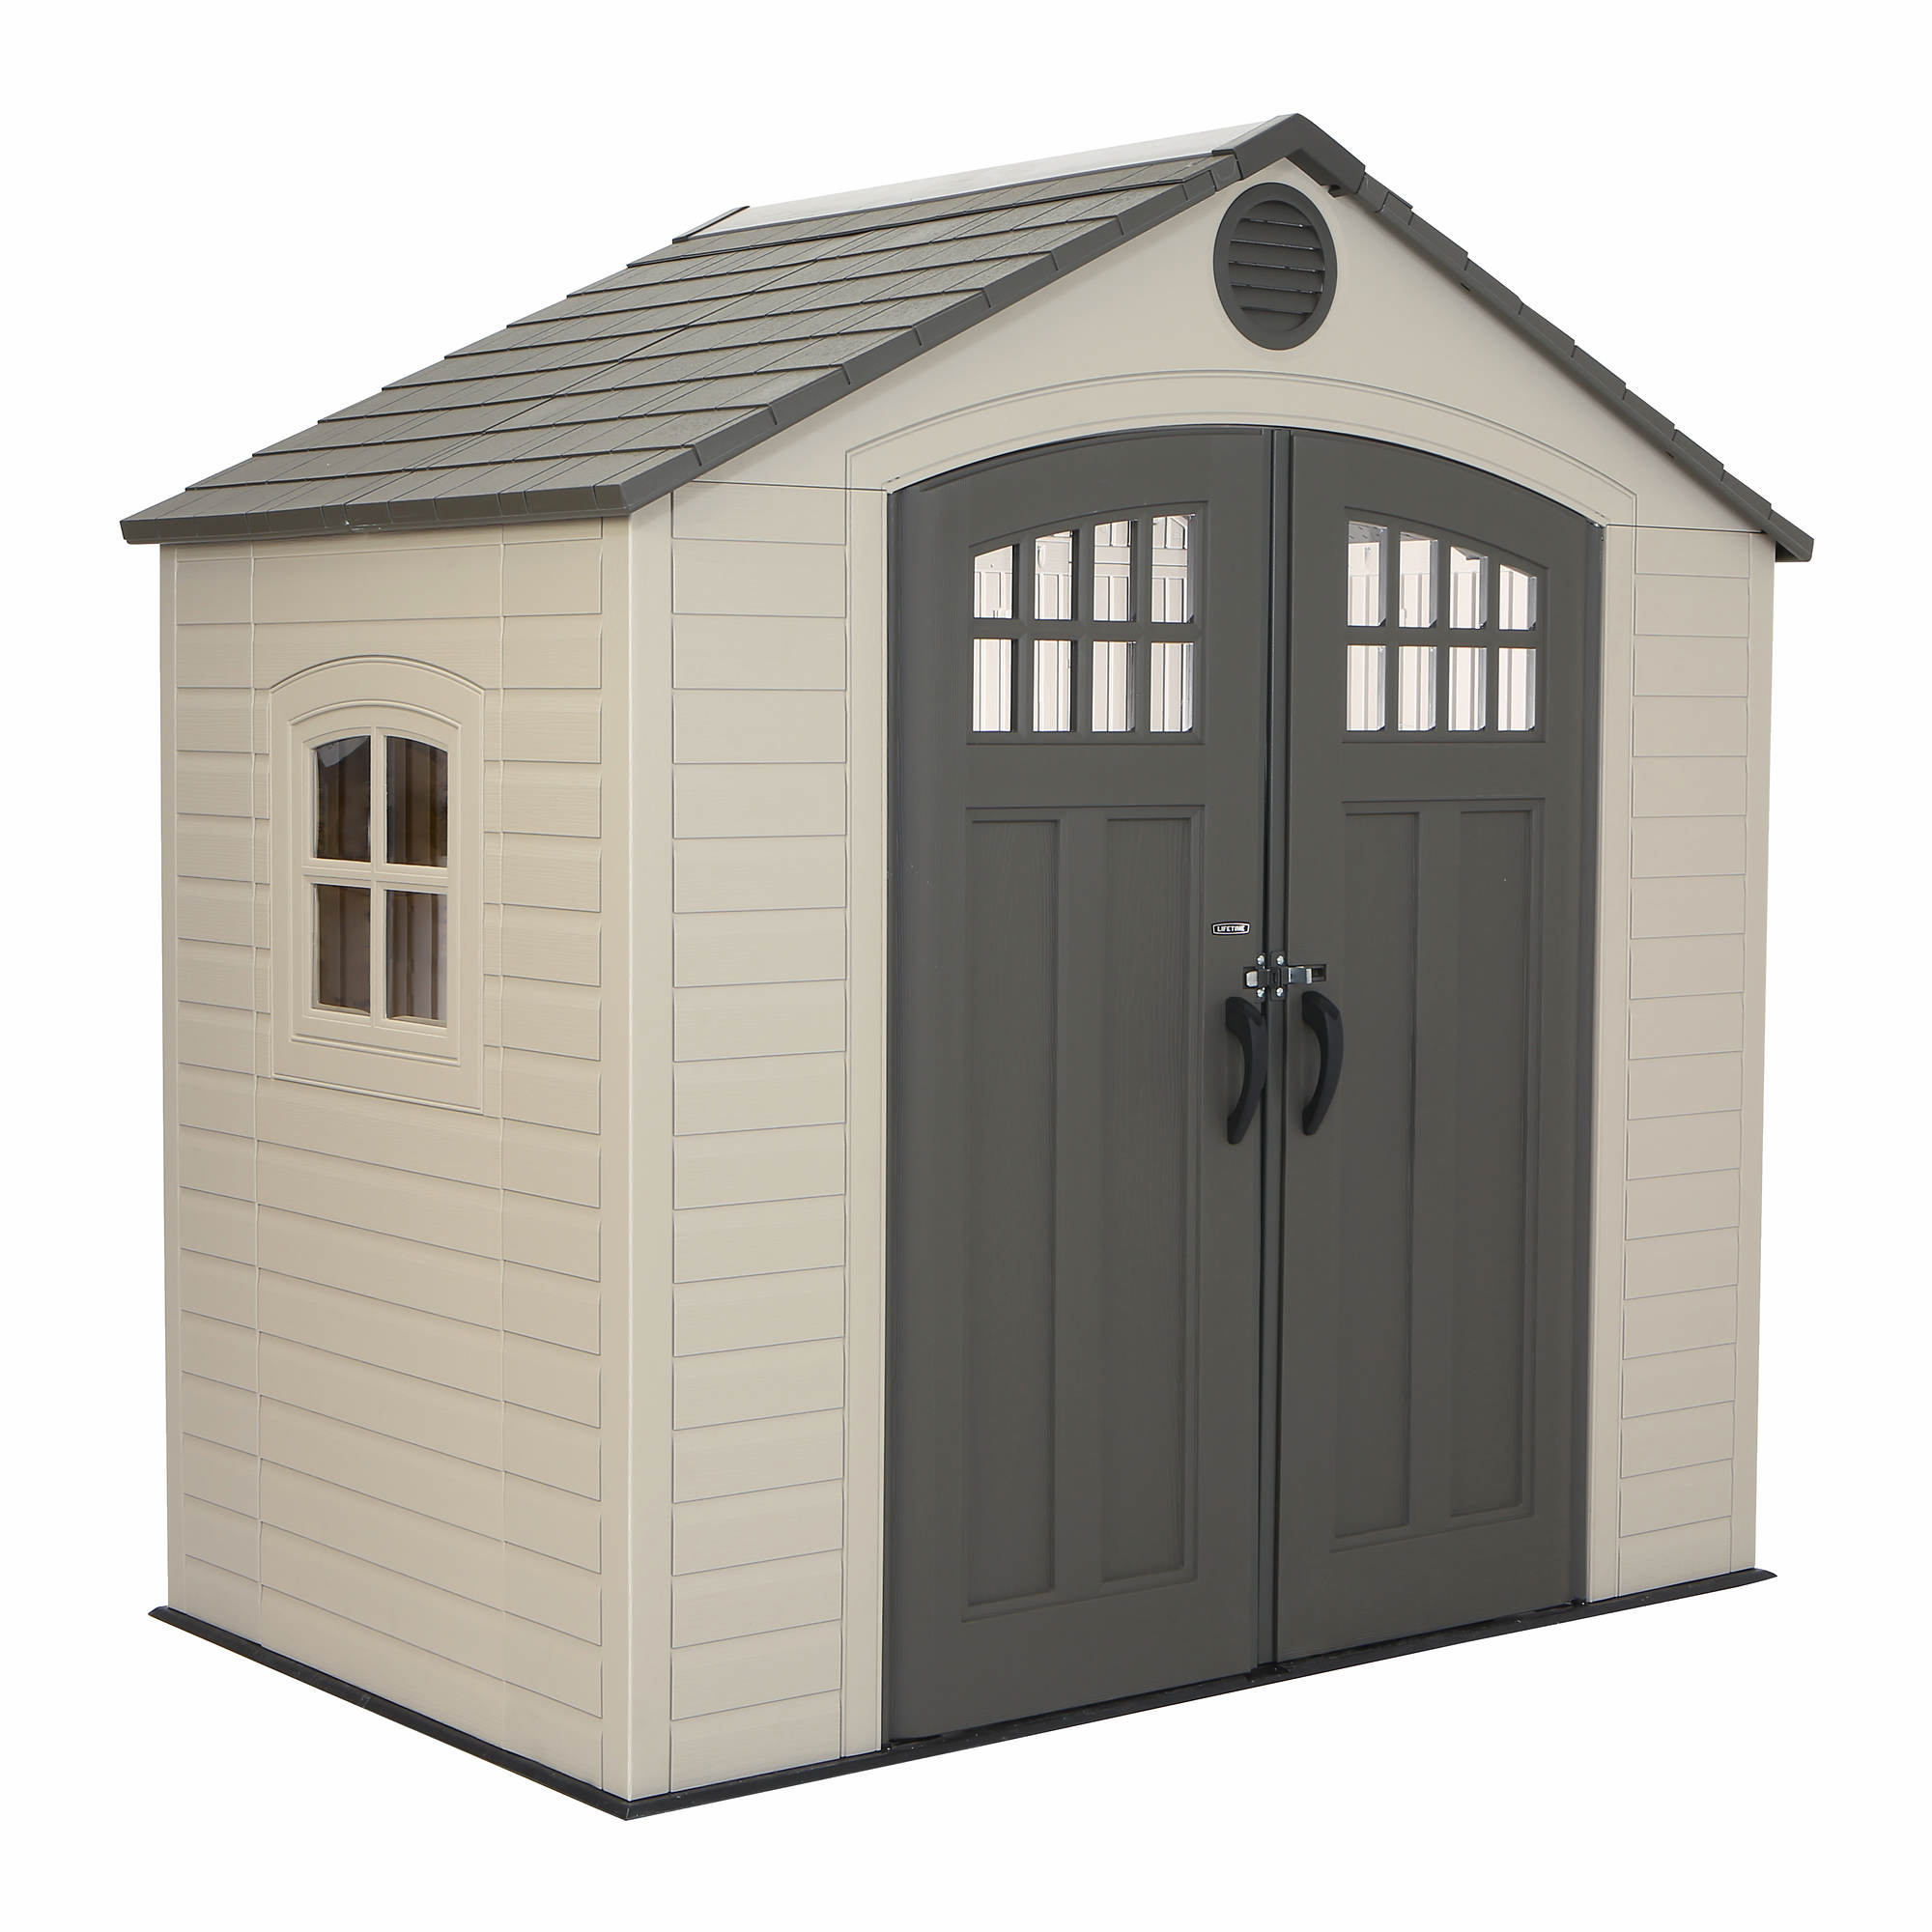 wooden garden x forest storage apex ft overlap wayfair reviews uk d sheds w co shed pdp